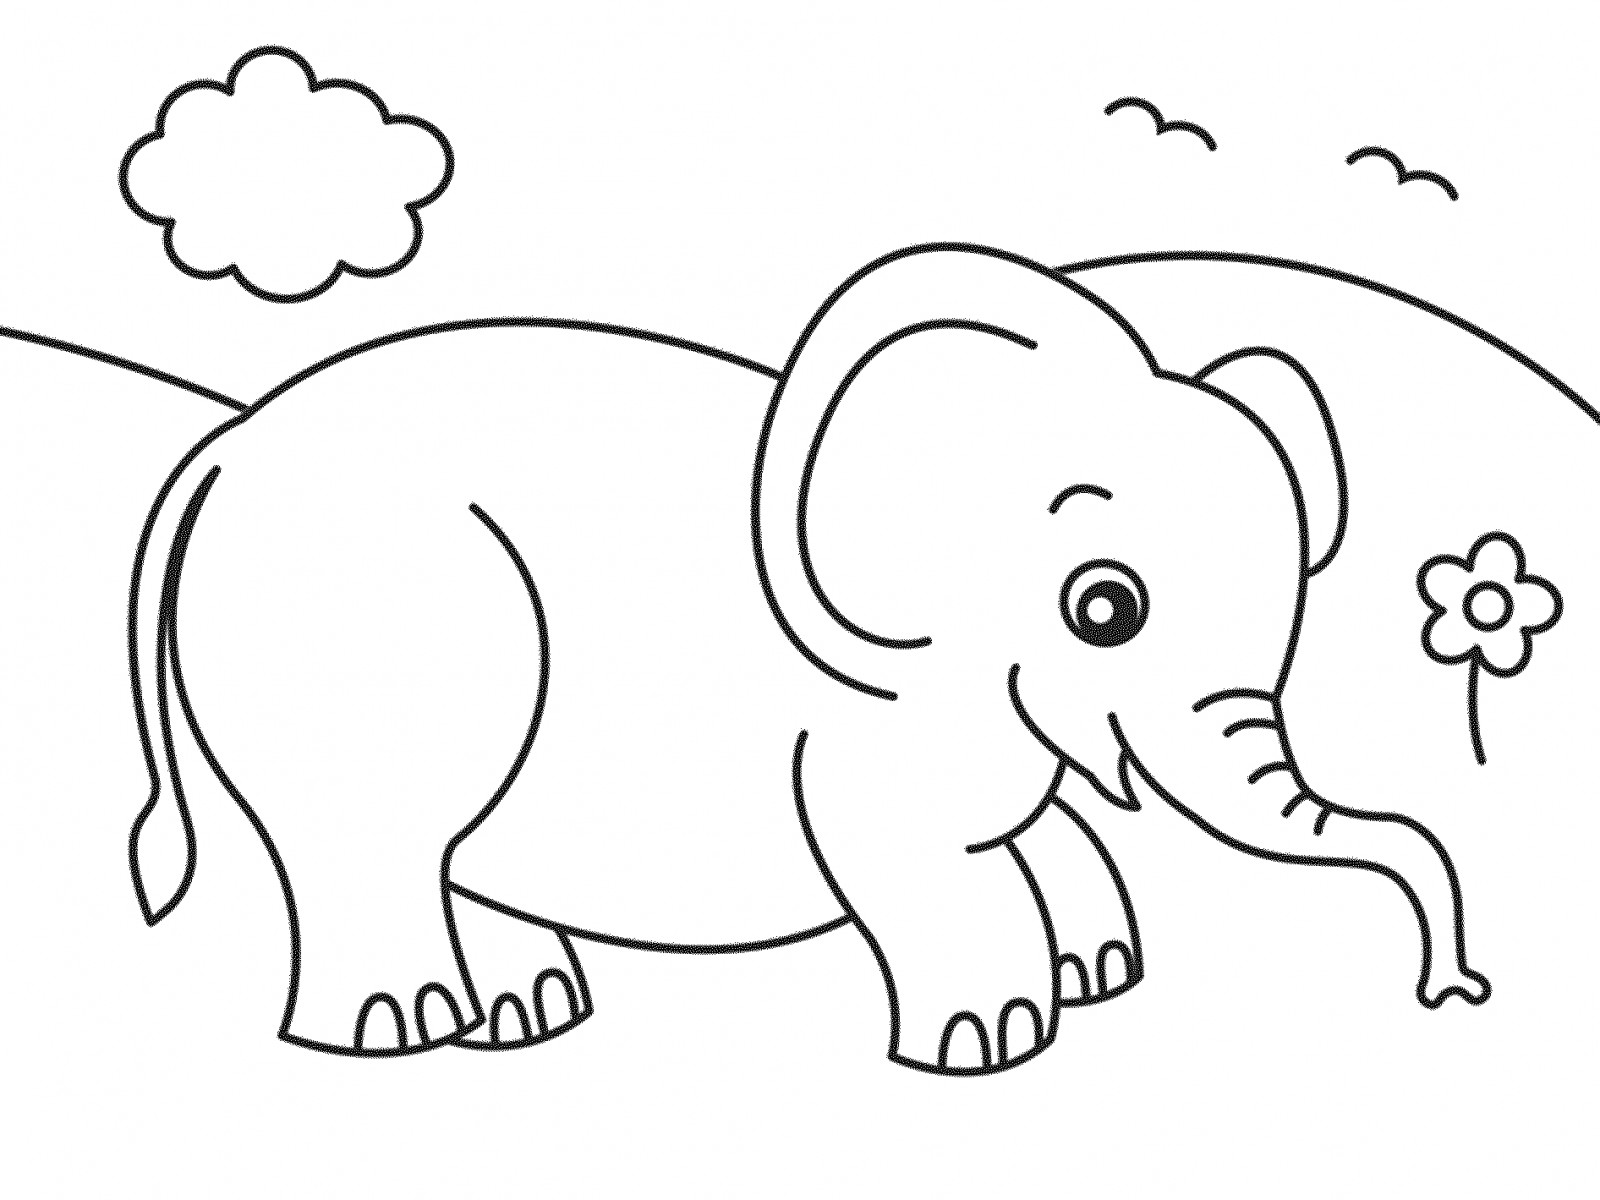 1600x1200 Cartoon Elephant Animals Coloring Pages For Kids Unique Realistic